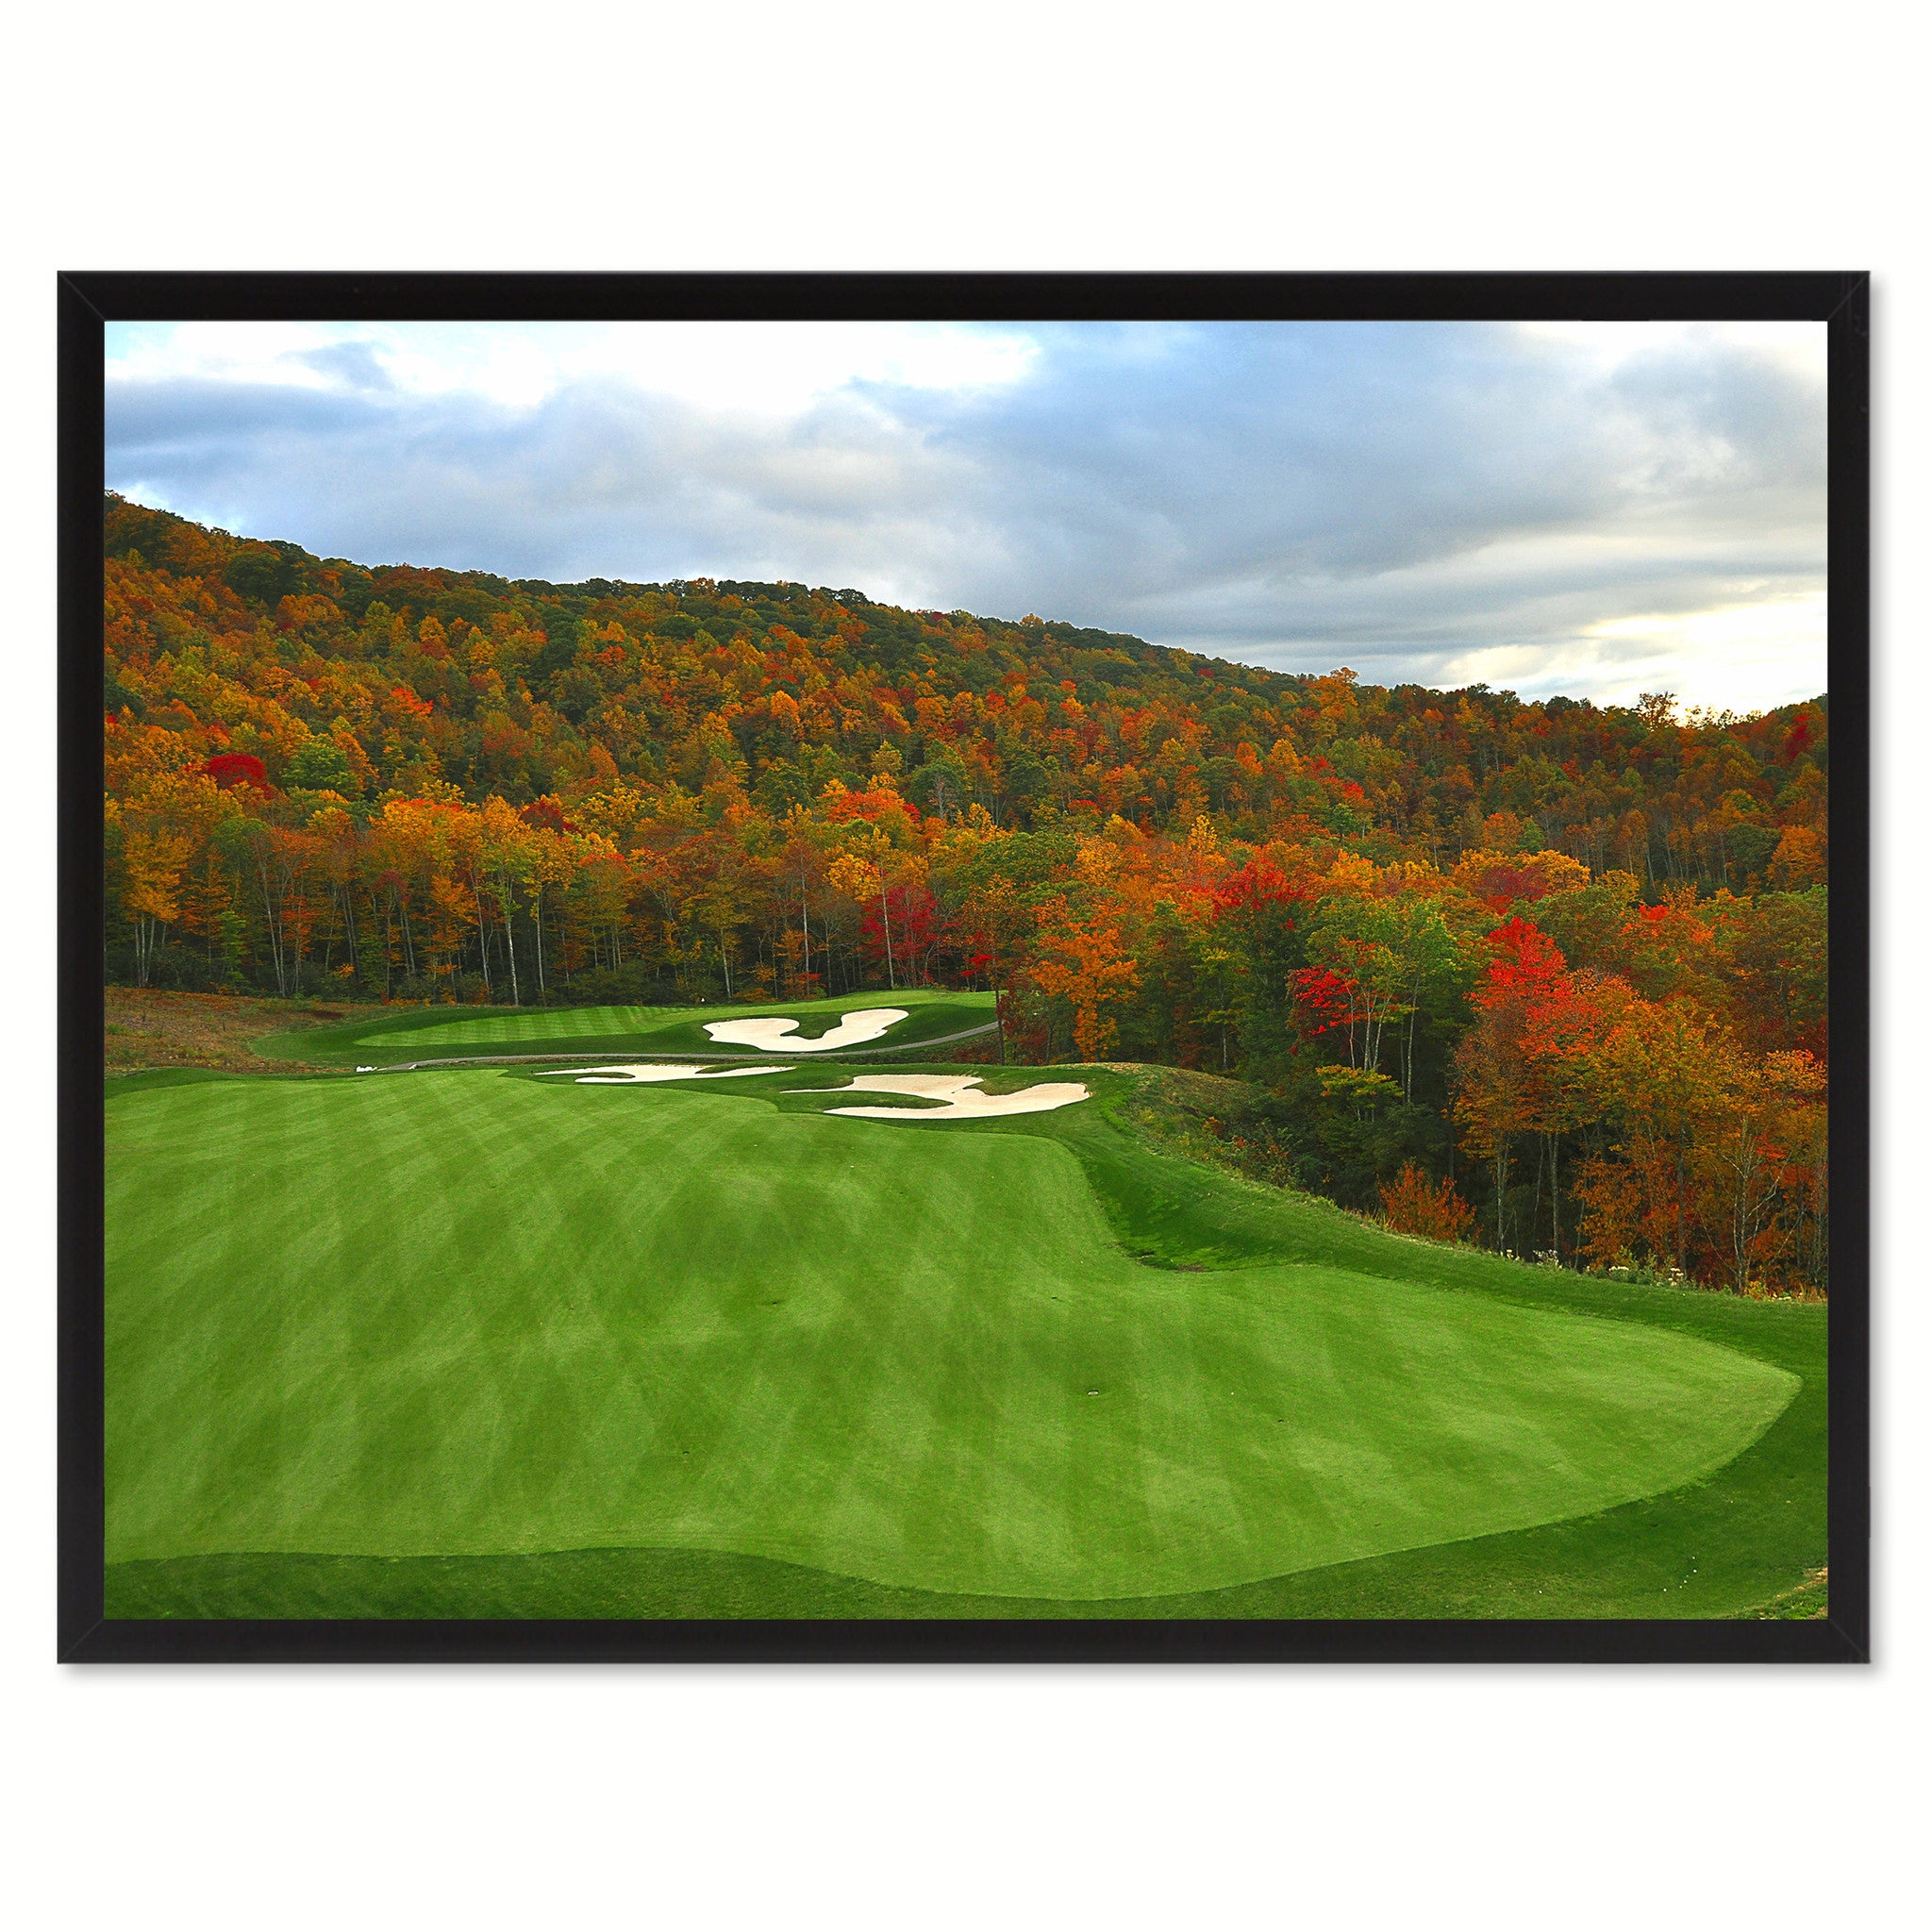 Nestled Golf Course Photo Canvas Print Pictures Frames Home Décor Wall Art Gifts